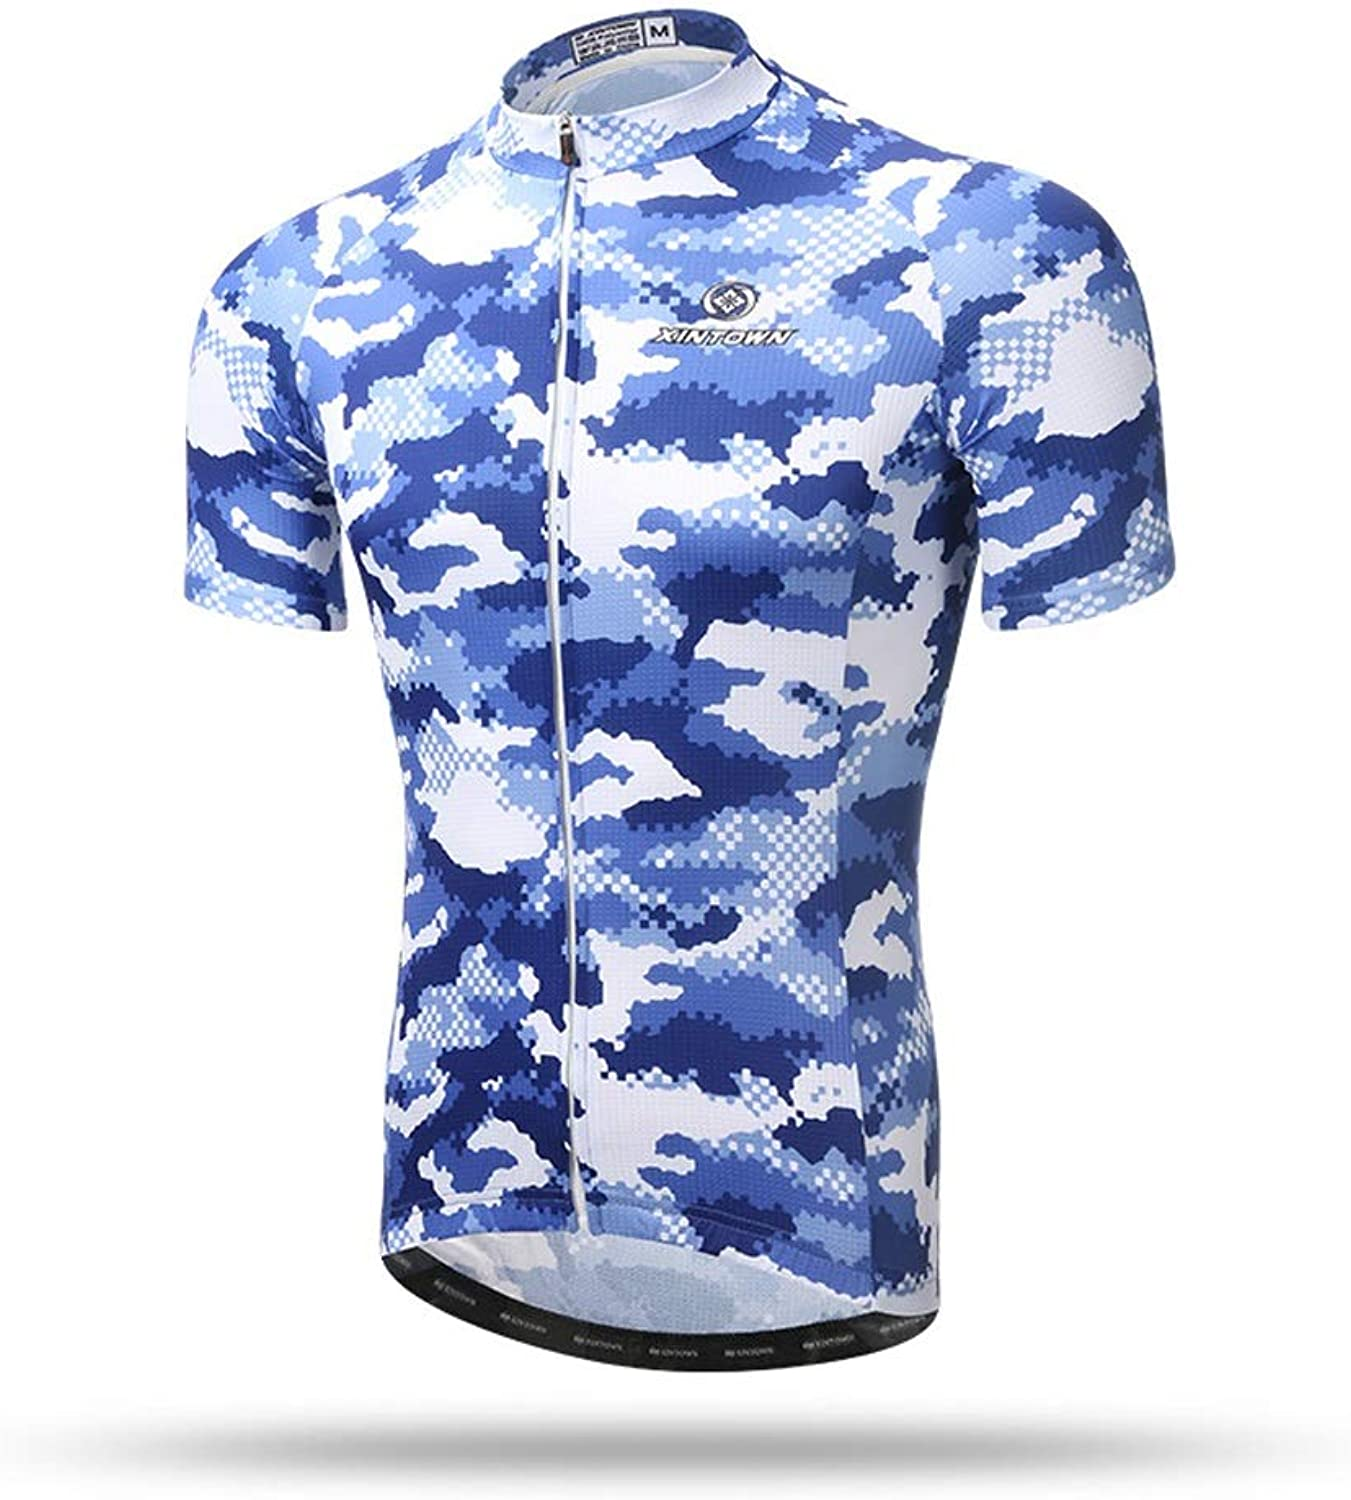 Unkoo Top Best Camouflage Men's Cycling Jerseys Tops Biking Shirts Short Bike Clothing Full Zip Bicycle Jacket with Pockets Jersey Sleeves Mountain Shirt MTB Top Zipper Reflective